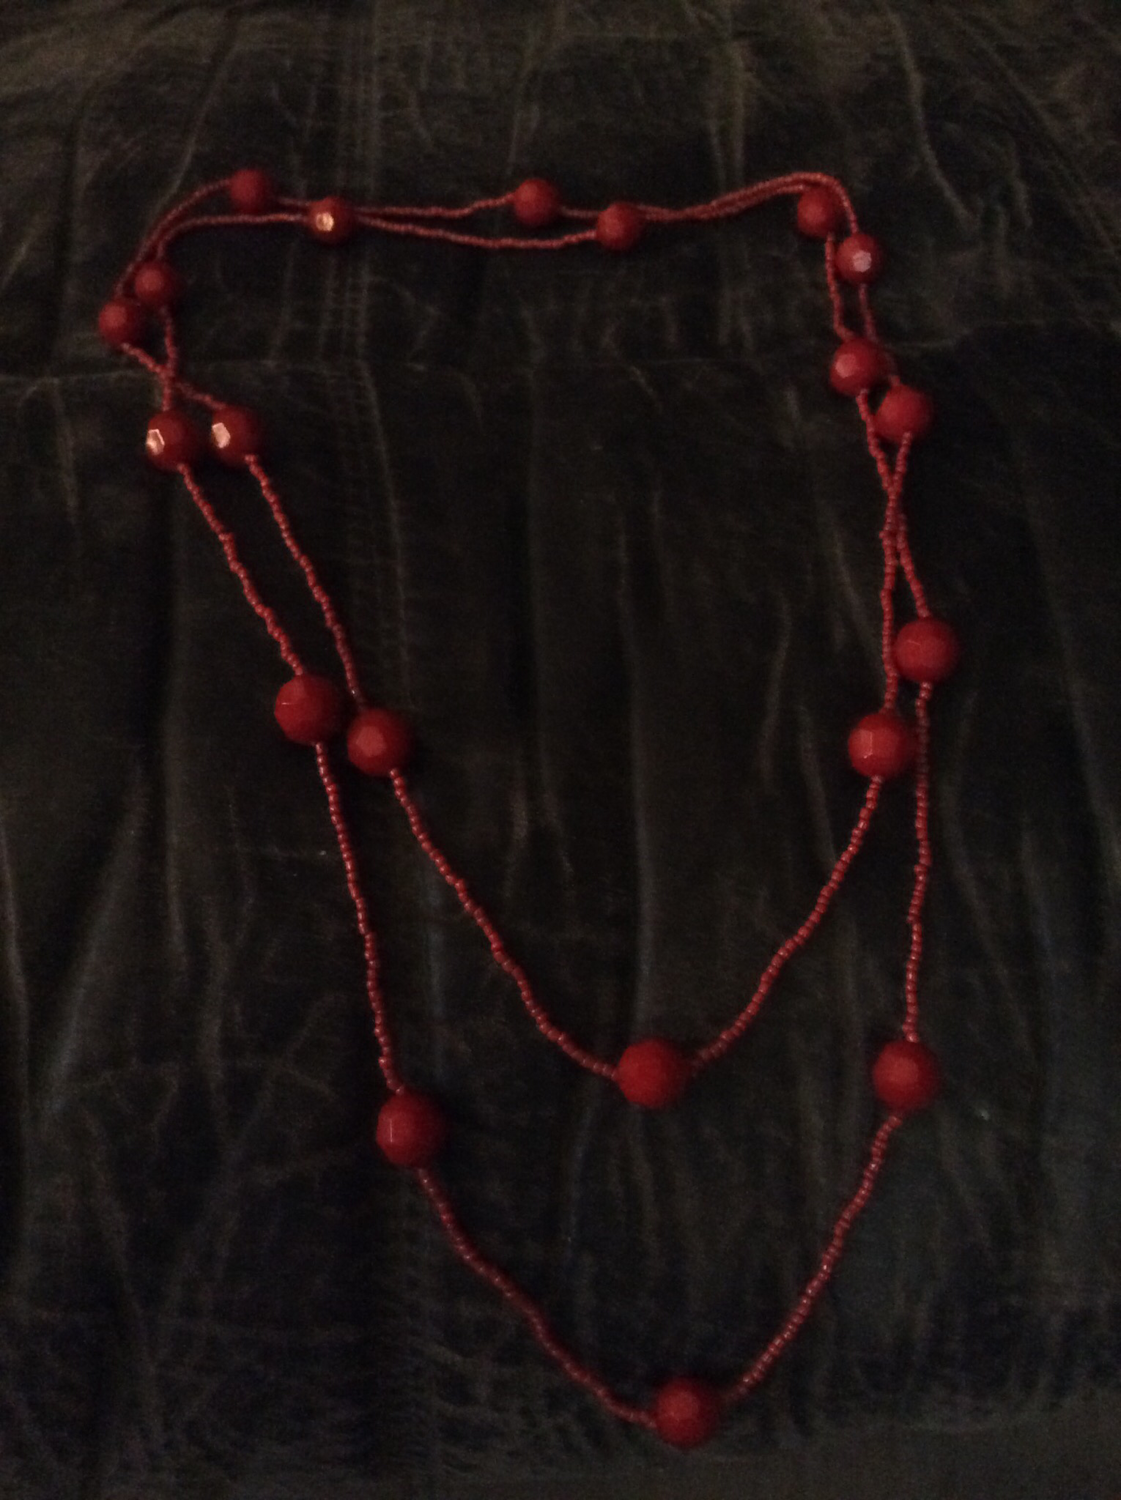 Red necklace #3 facilitate remote viewing, astral projection and out of body experiences